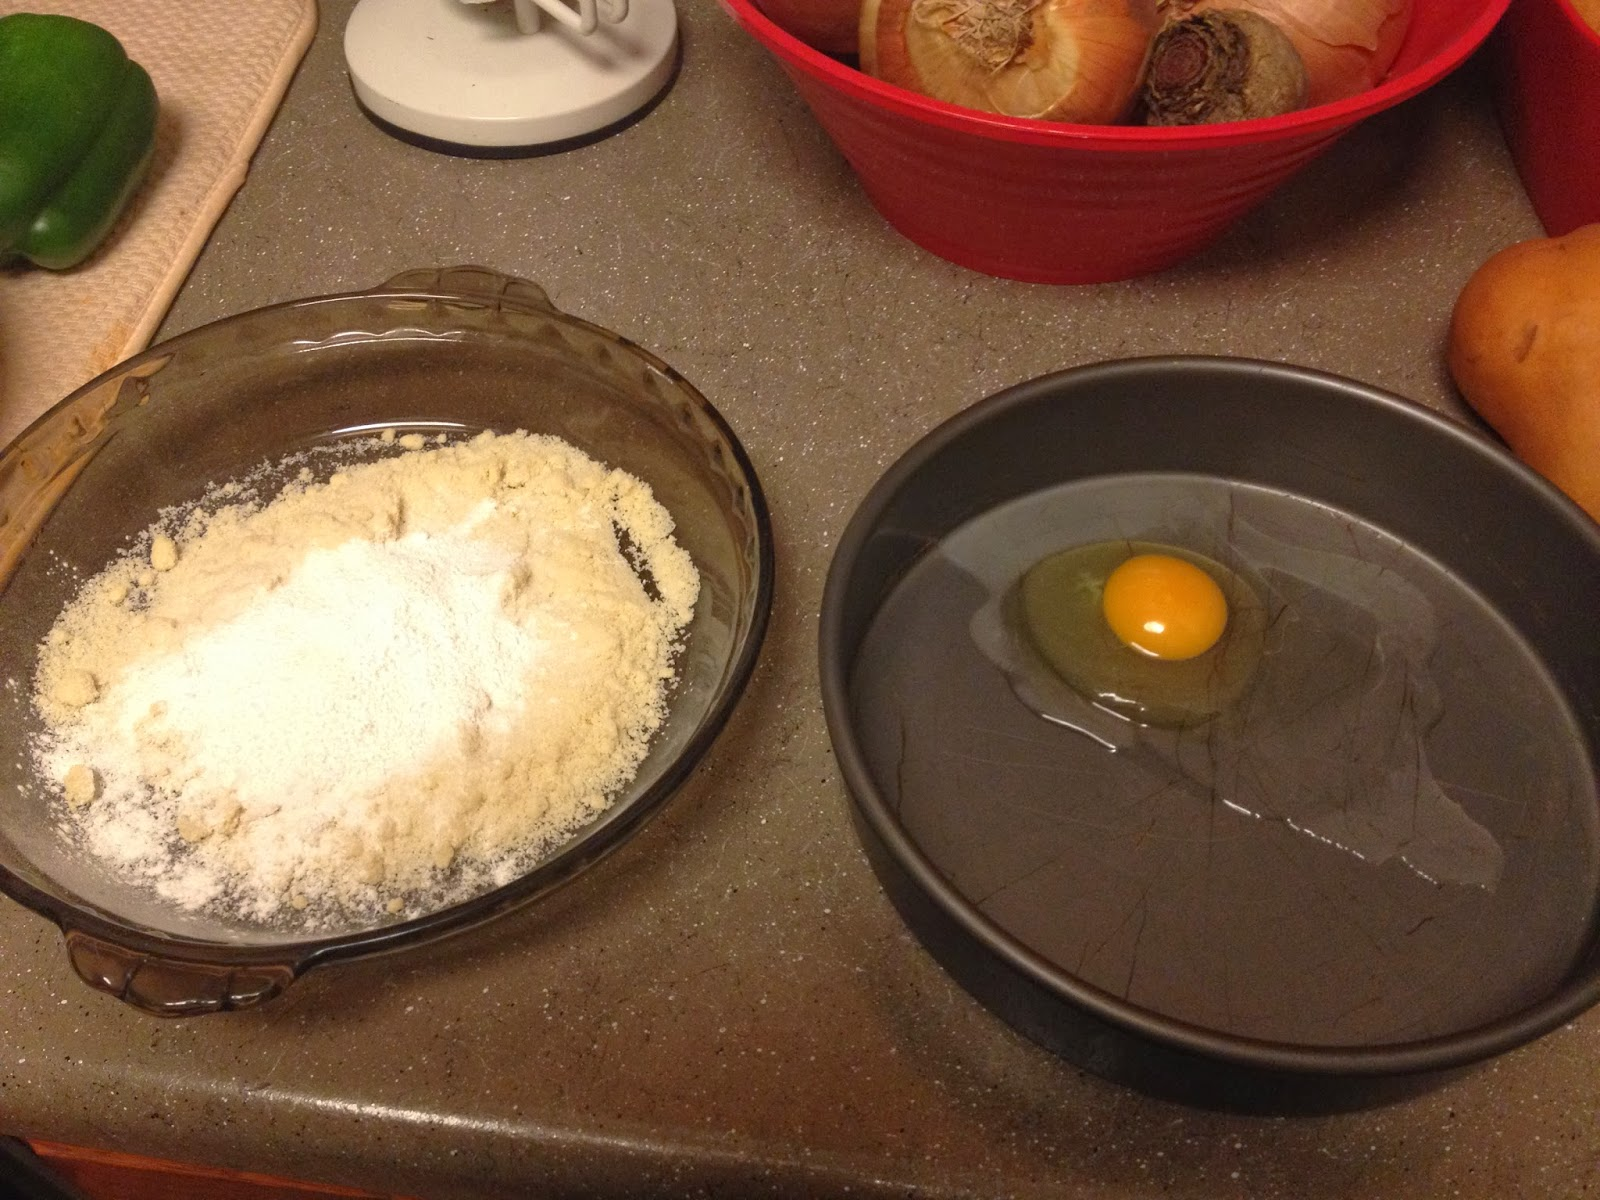 4) Using Your Flattened Pork Chops, Dip One Into The Egg Mixture And Then  Straight Into The Flour Mixture Make Sure You Evenly Coat Both Sides Of  The Chop